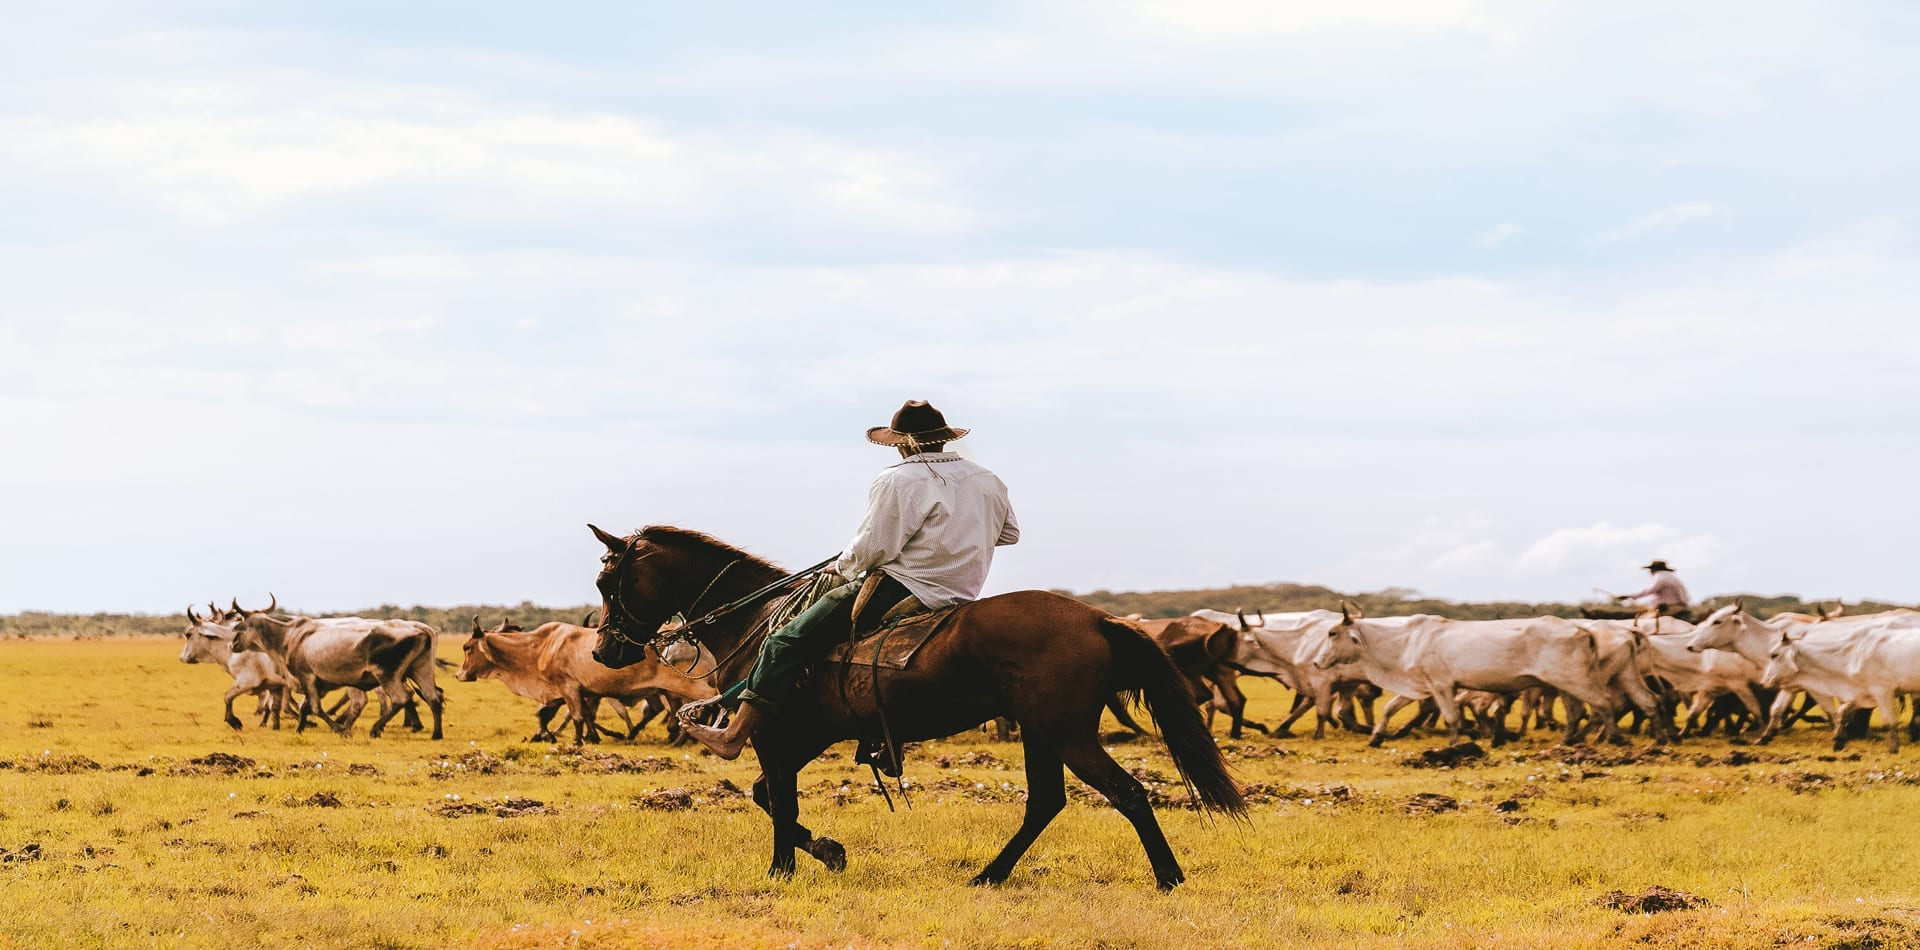 Colombia Cowboy horse riding